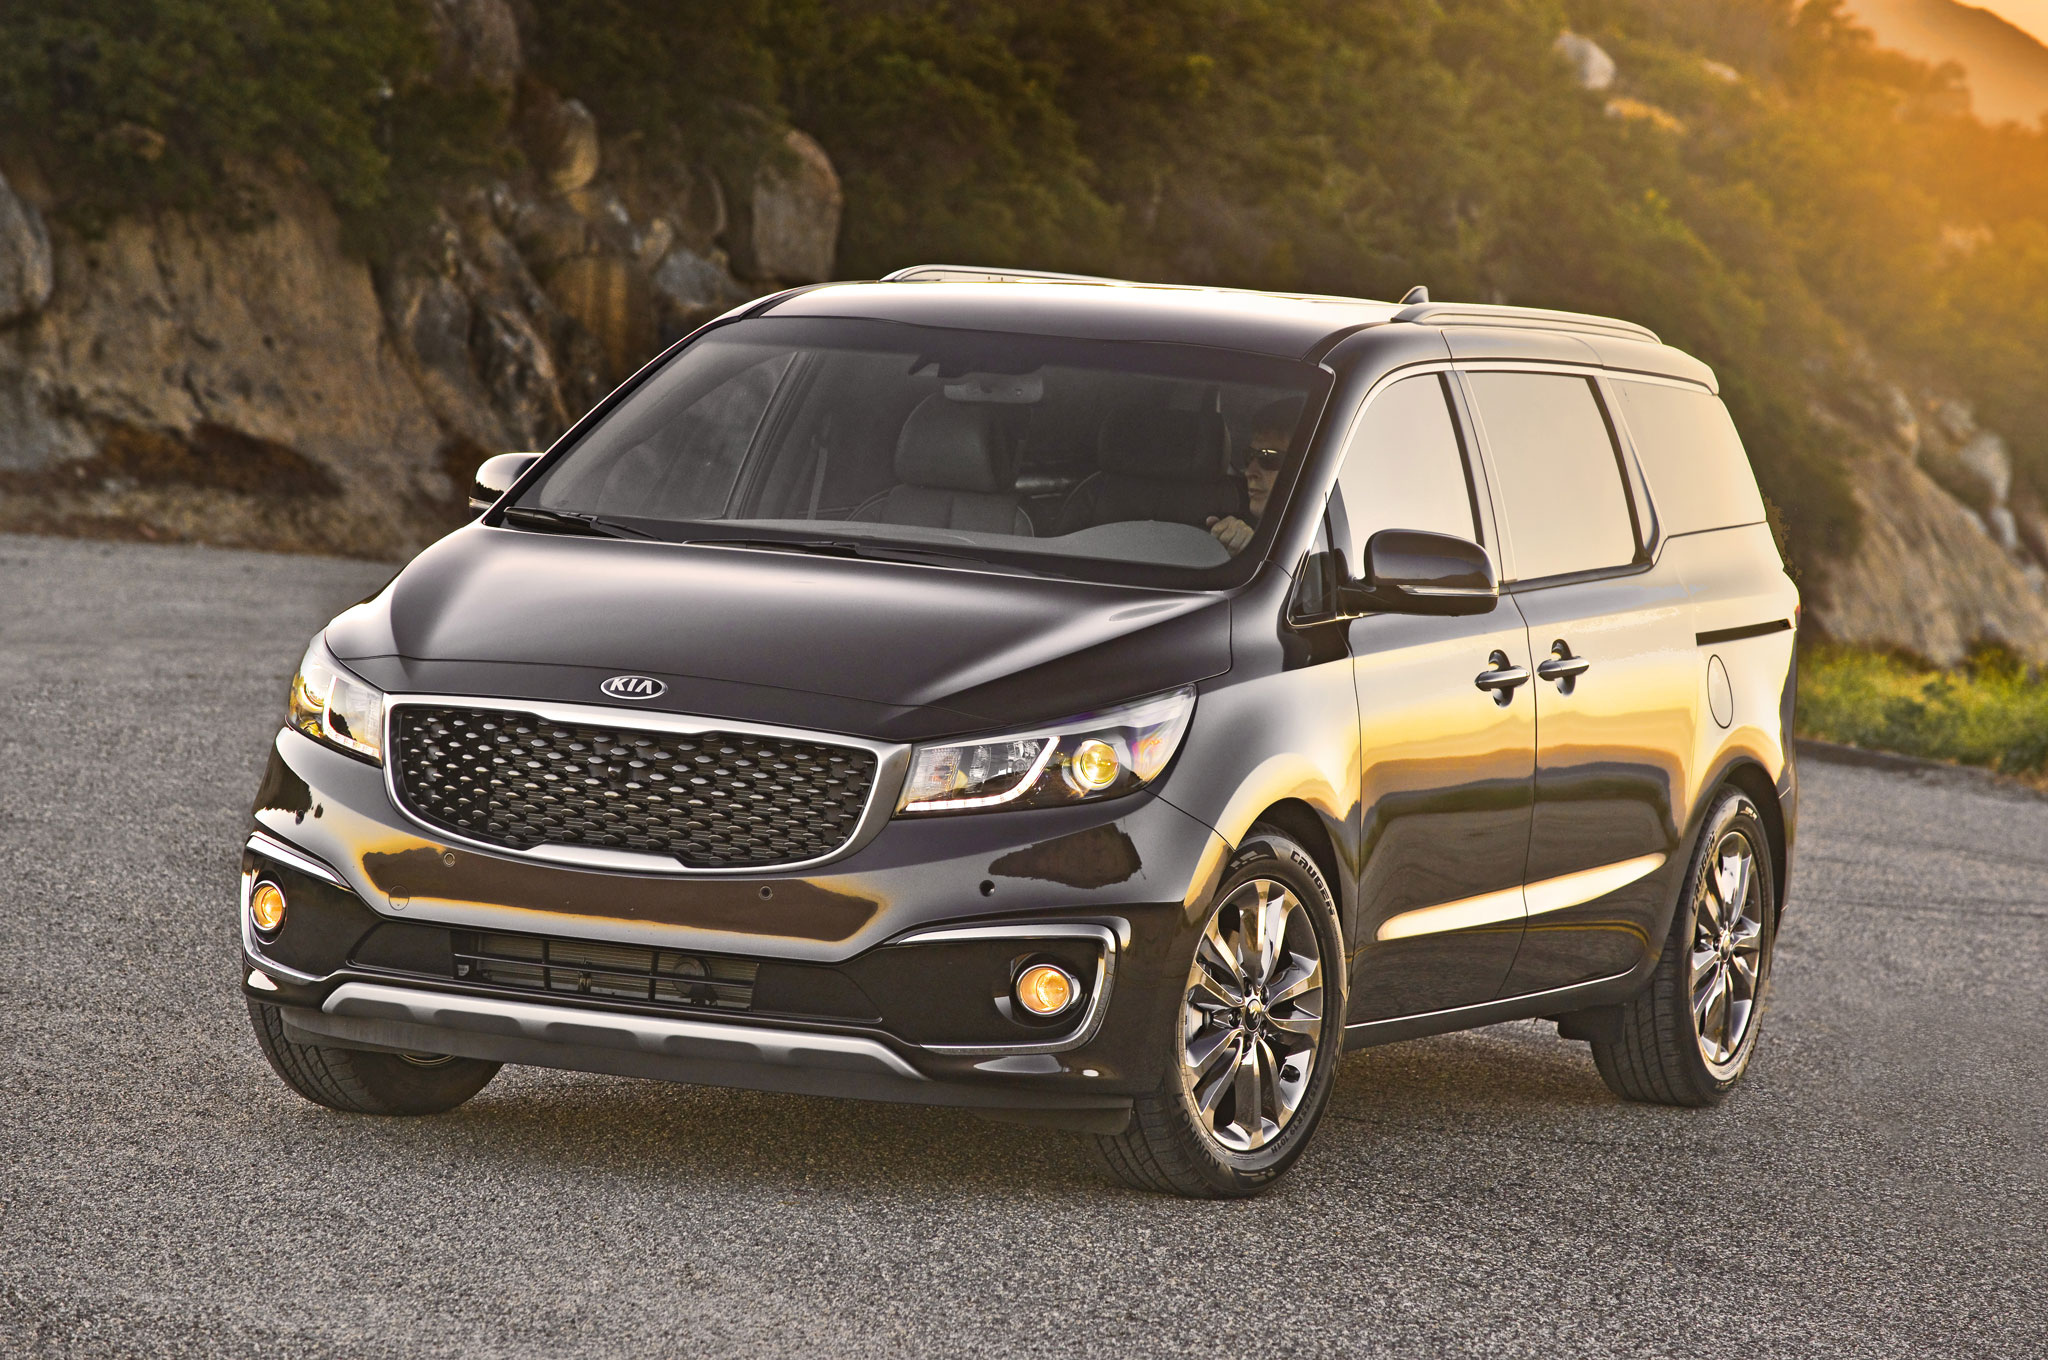 reviews kia com and autobytel driving impressions review sedona test road limited